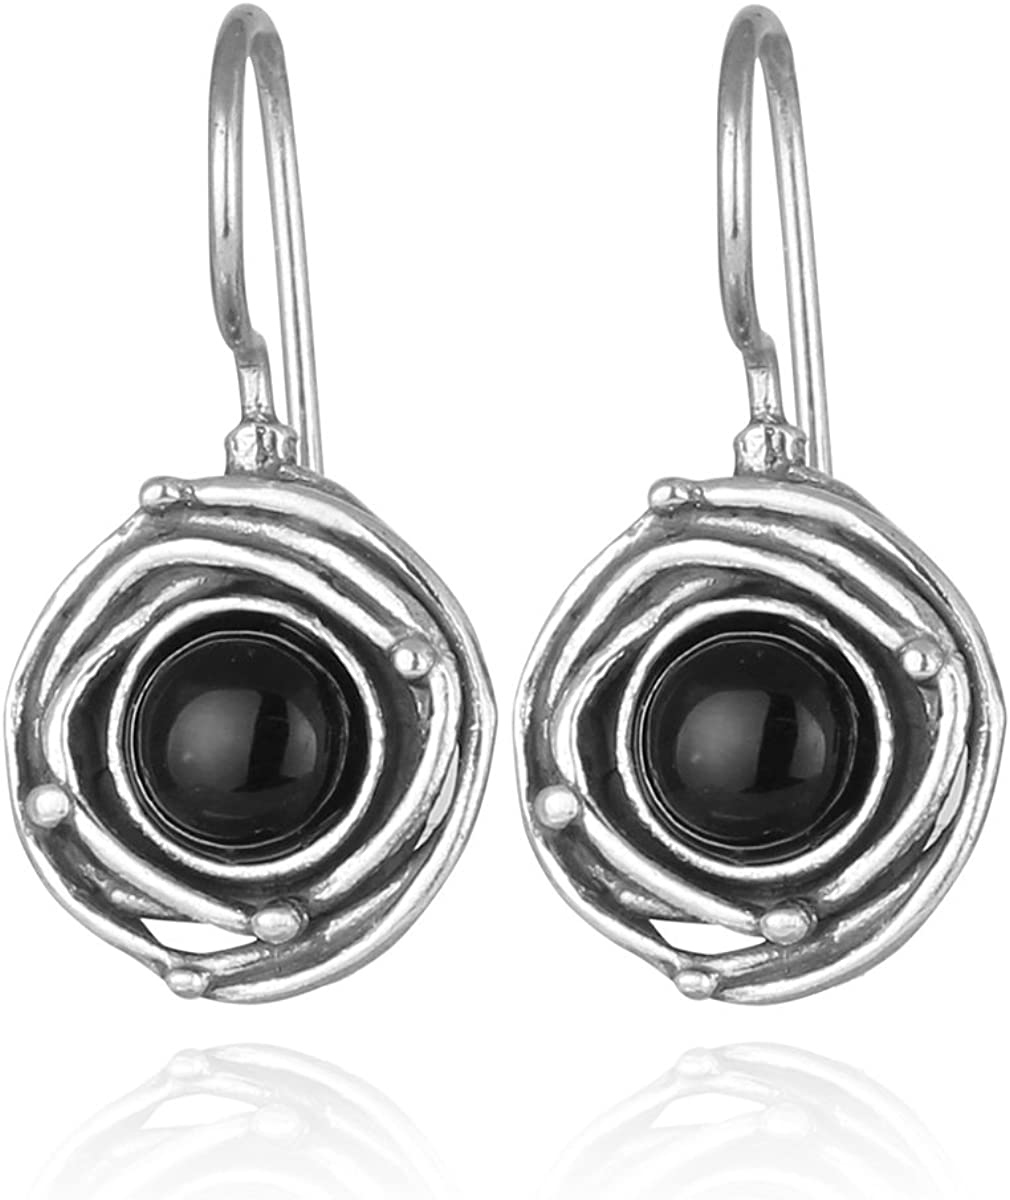 Vintage Houston Mall Style 925 Clearance SALE! Limited time! Sterling Silver Earrings Swirl with Onyx Black